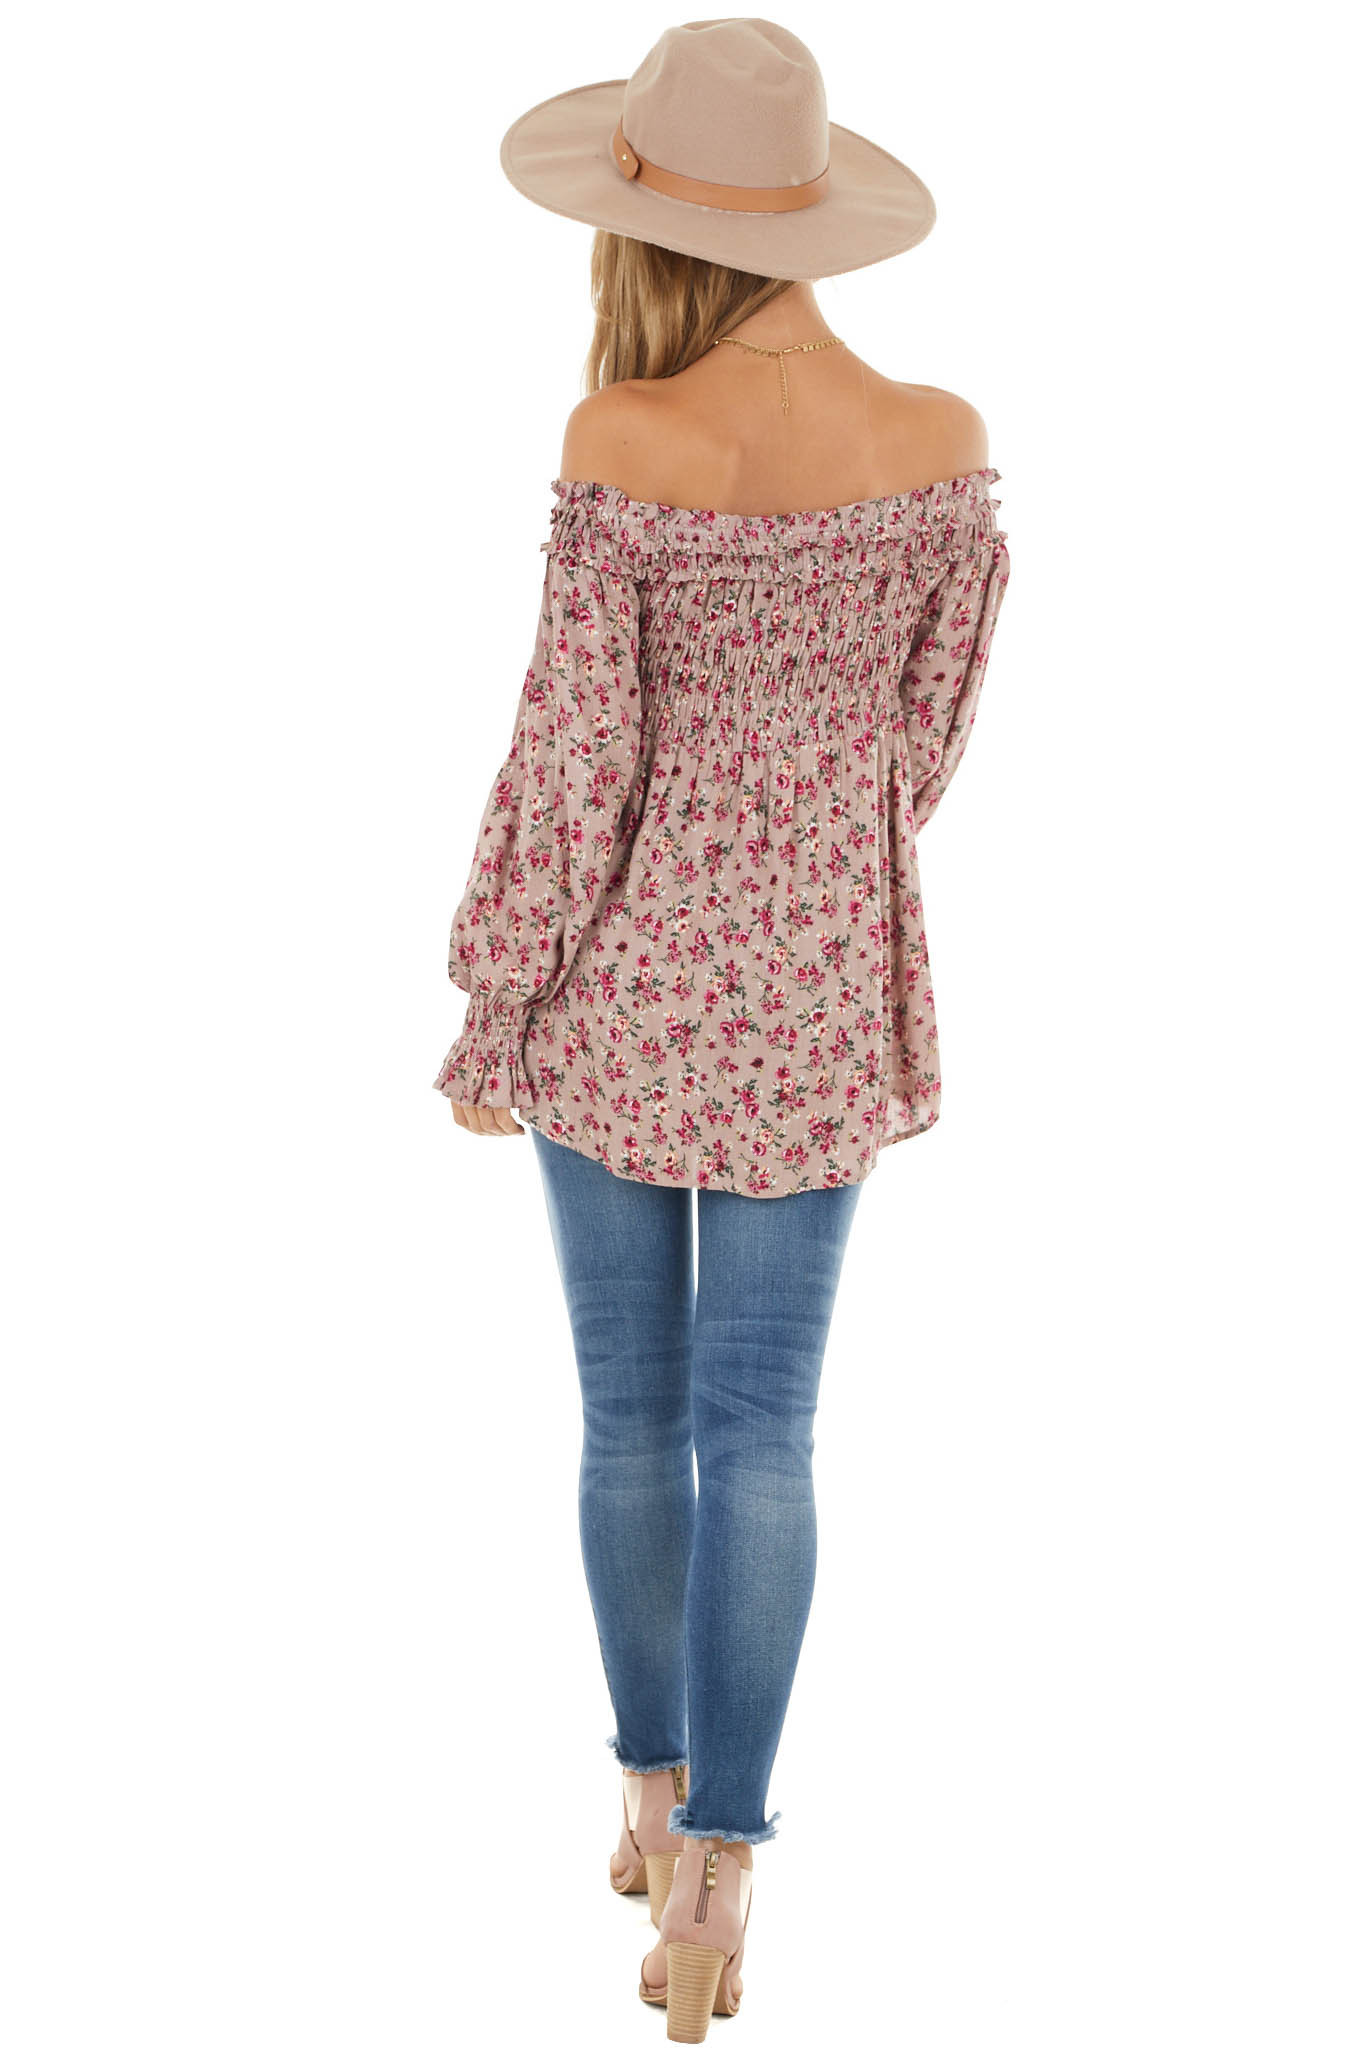 Dusty Mauve Floral Print Off Shoulder Top with Smocked Bust